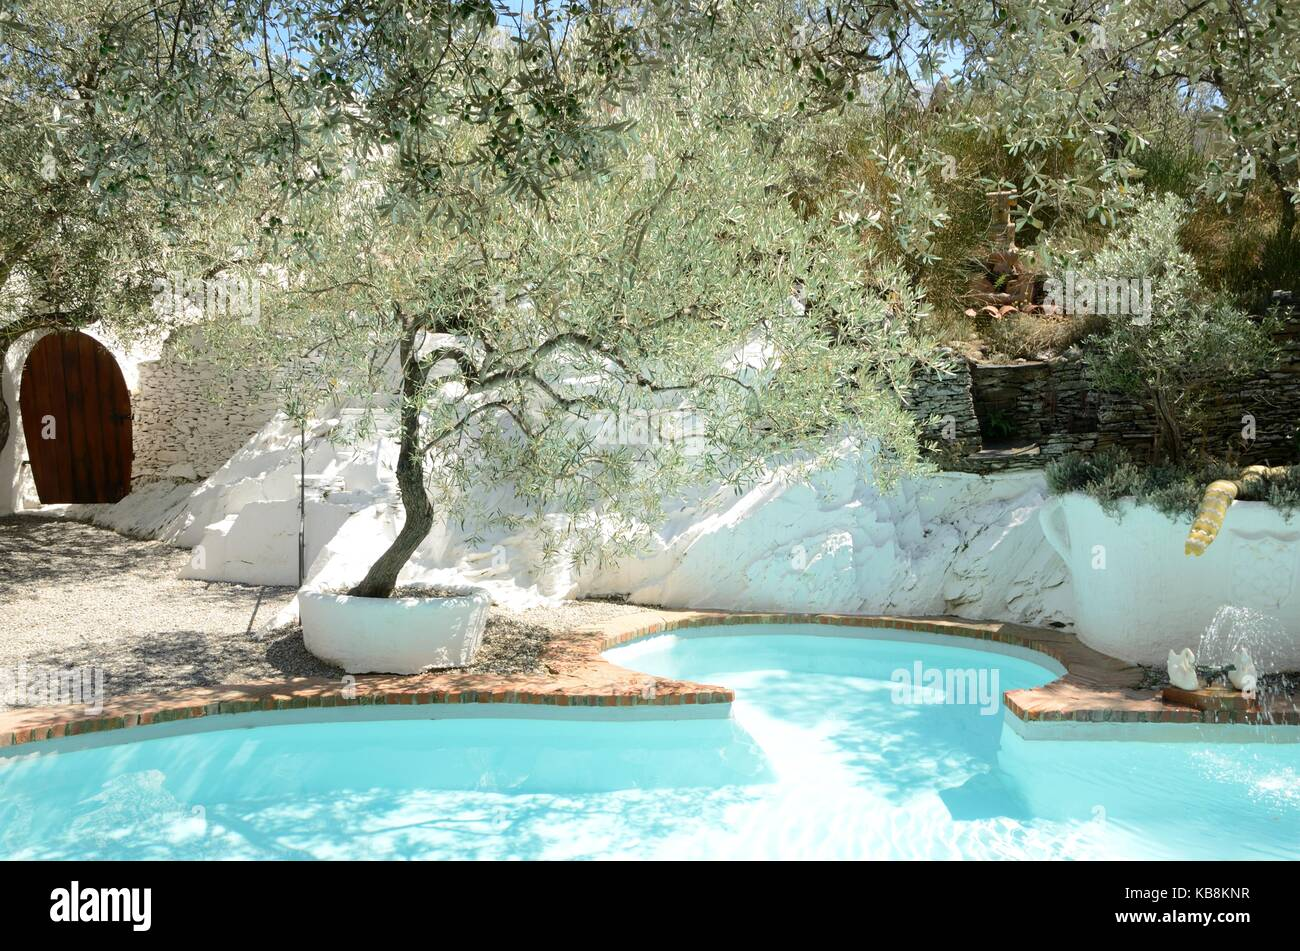 sailcloth beach chairs ergonomics desk chair olive tree swimming pool stock photos & images - alamy